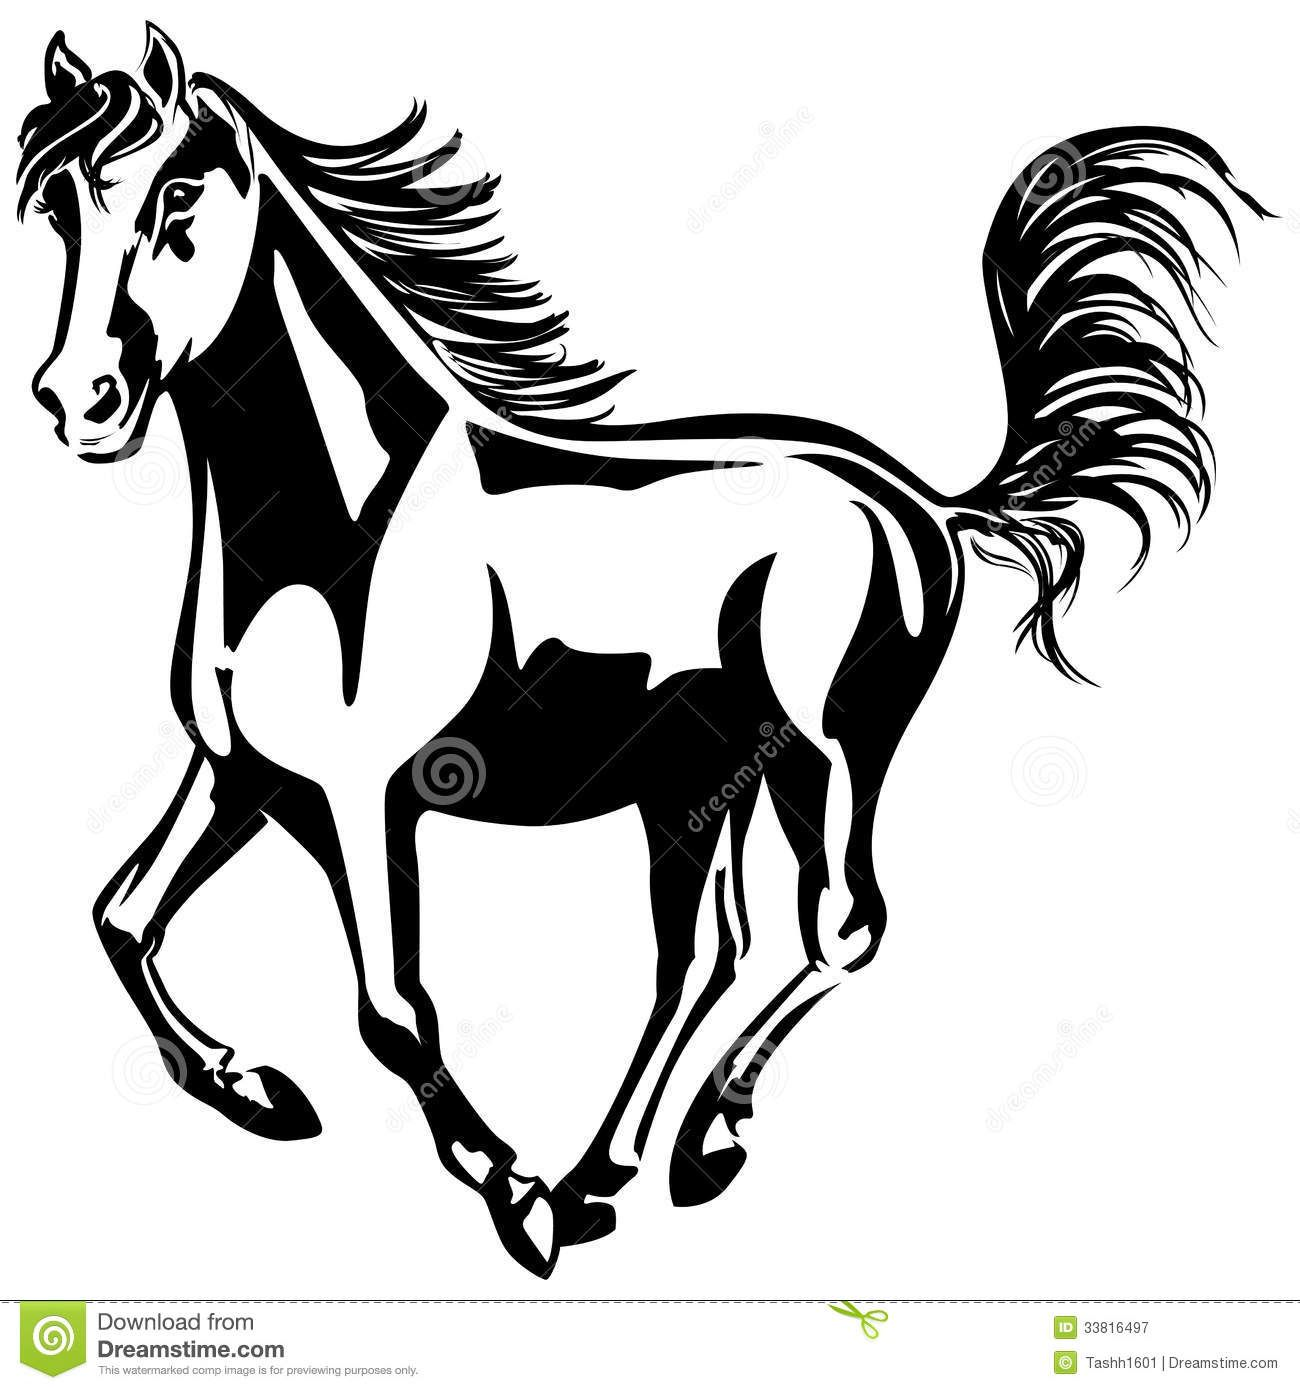 horse black and white drawing - Google Search | Survivor ...